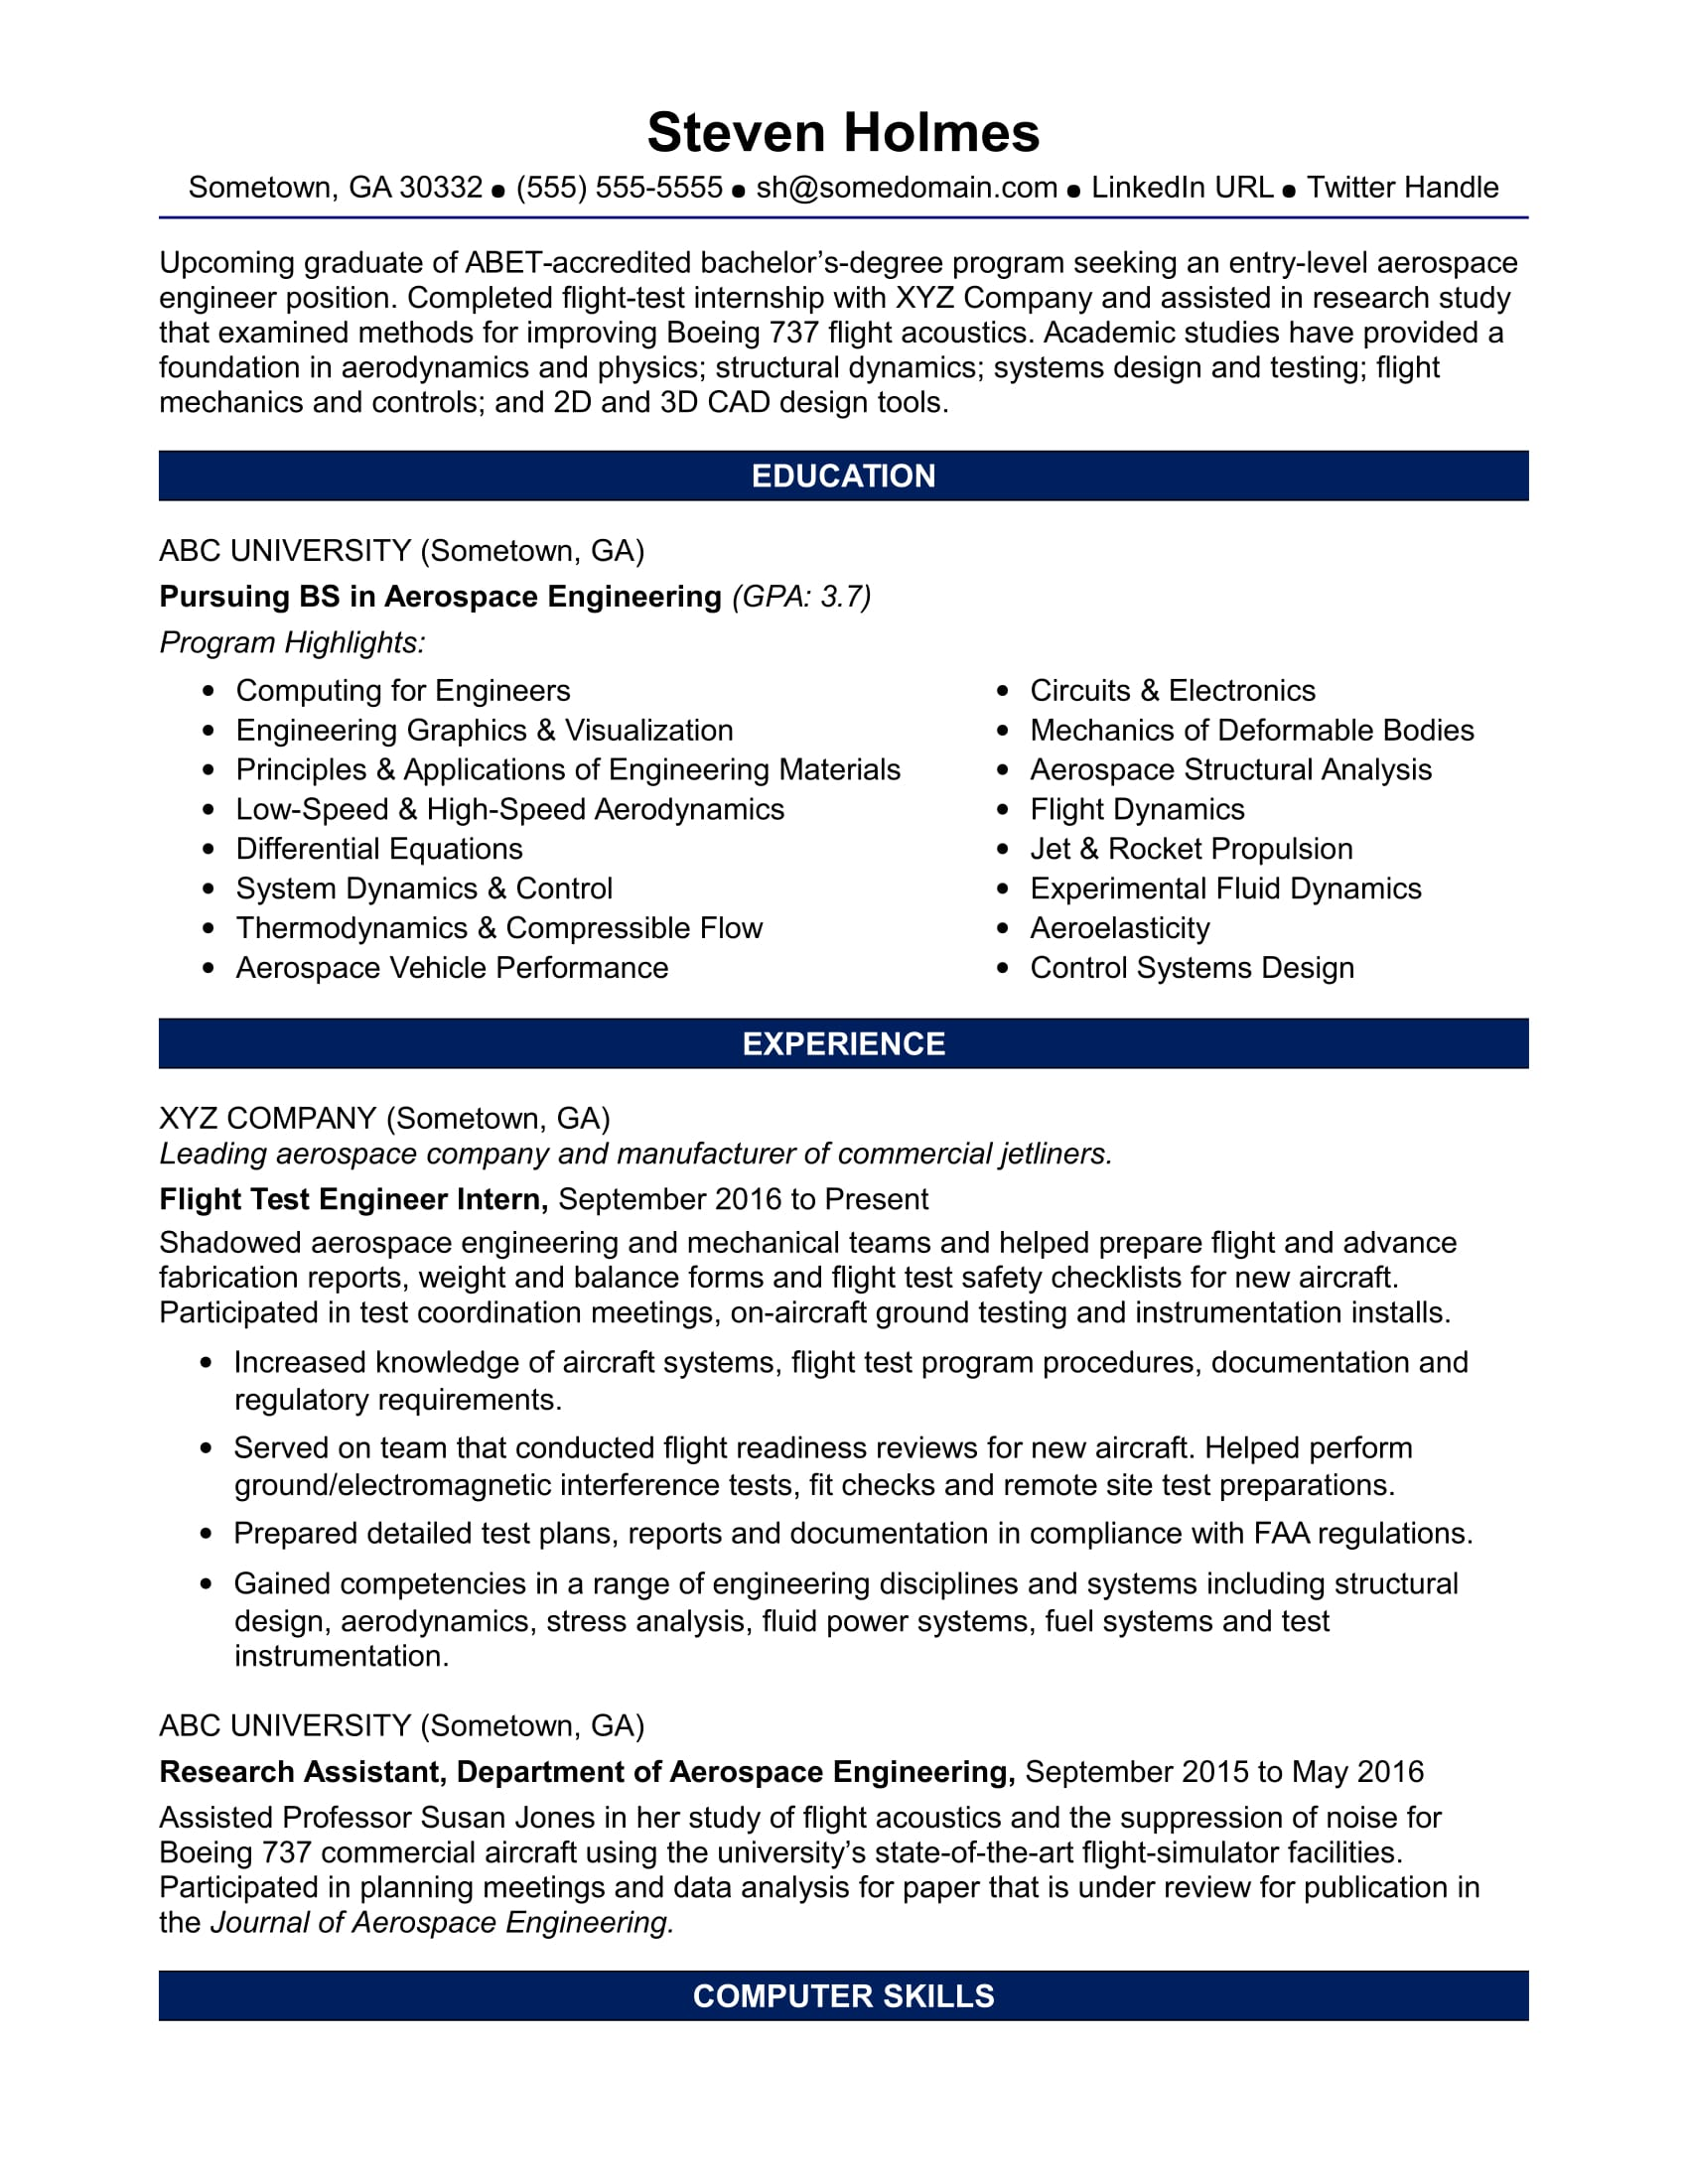 Sample Resume for an Entry-Level Aerospace Engineer ...